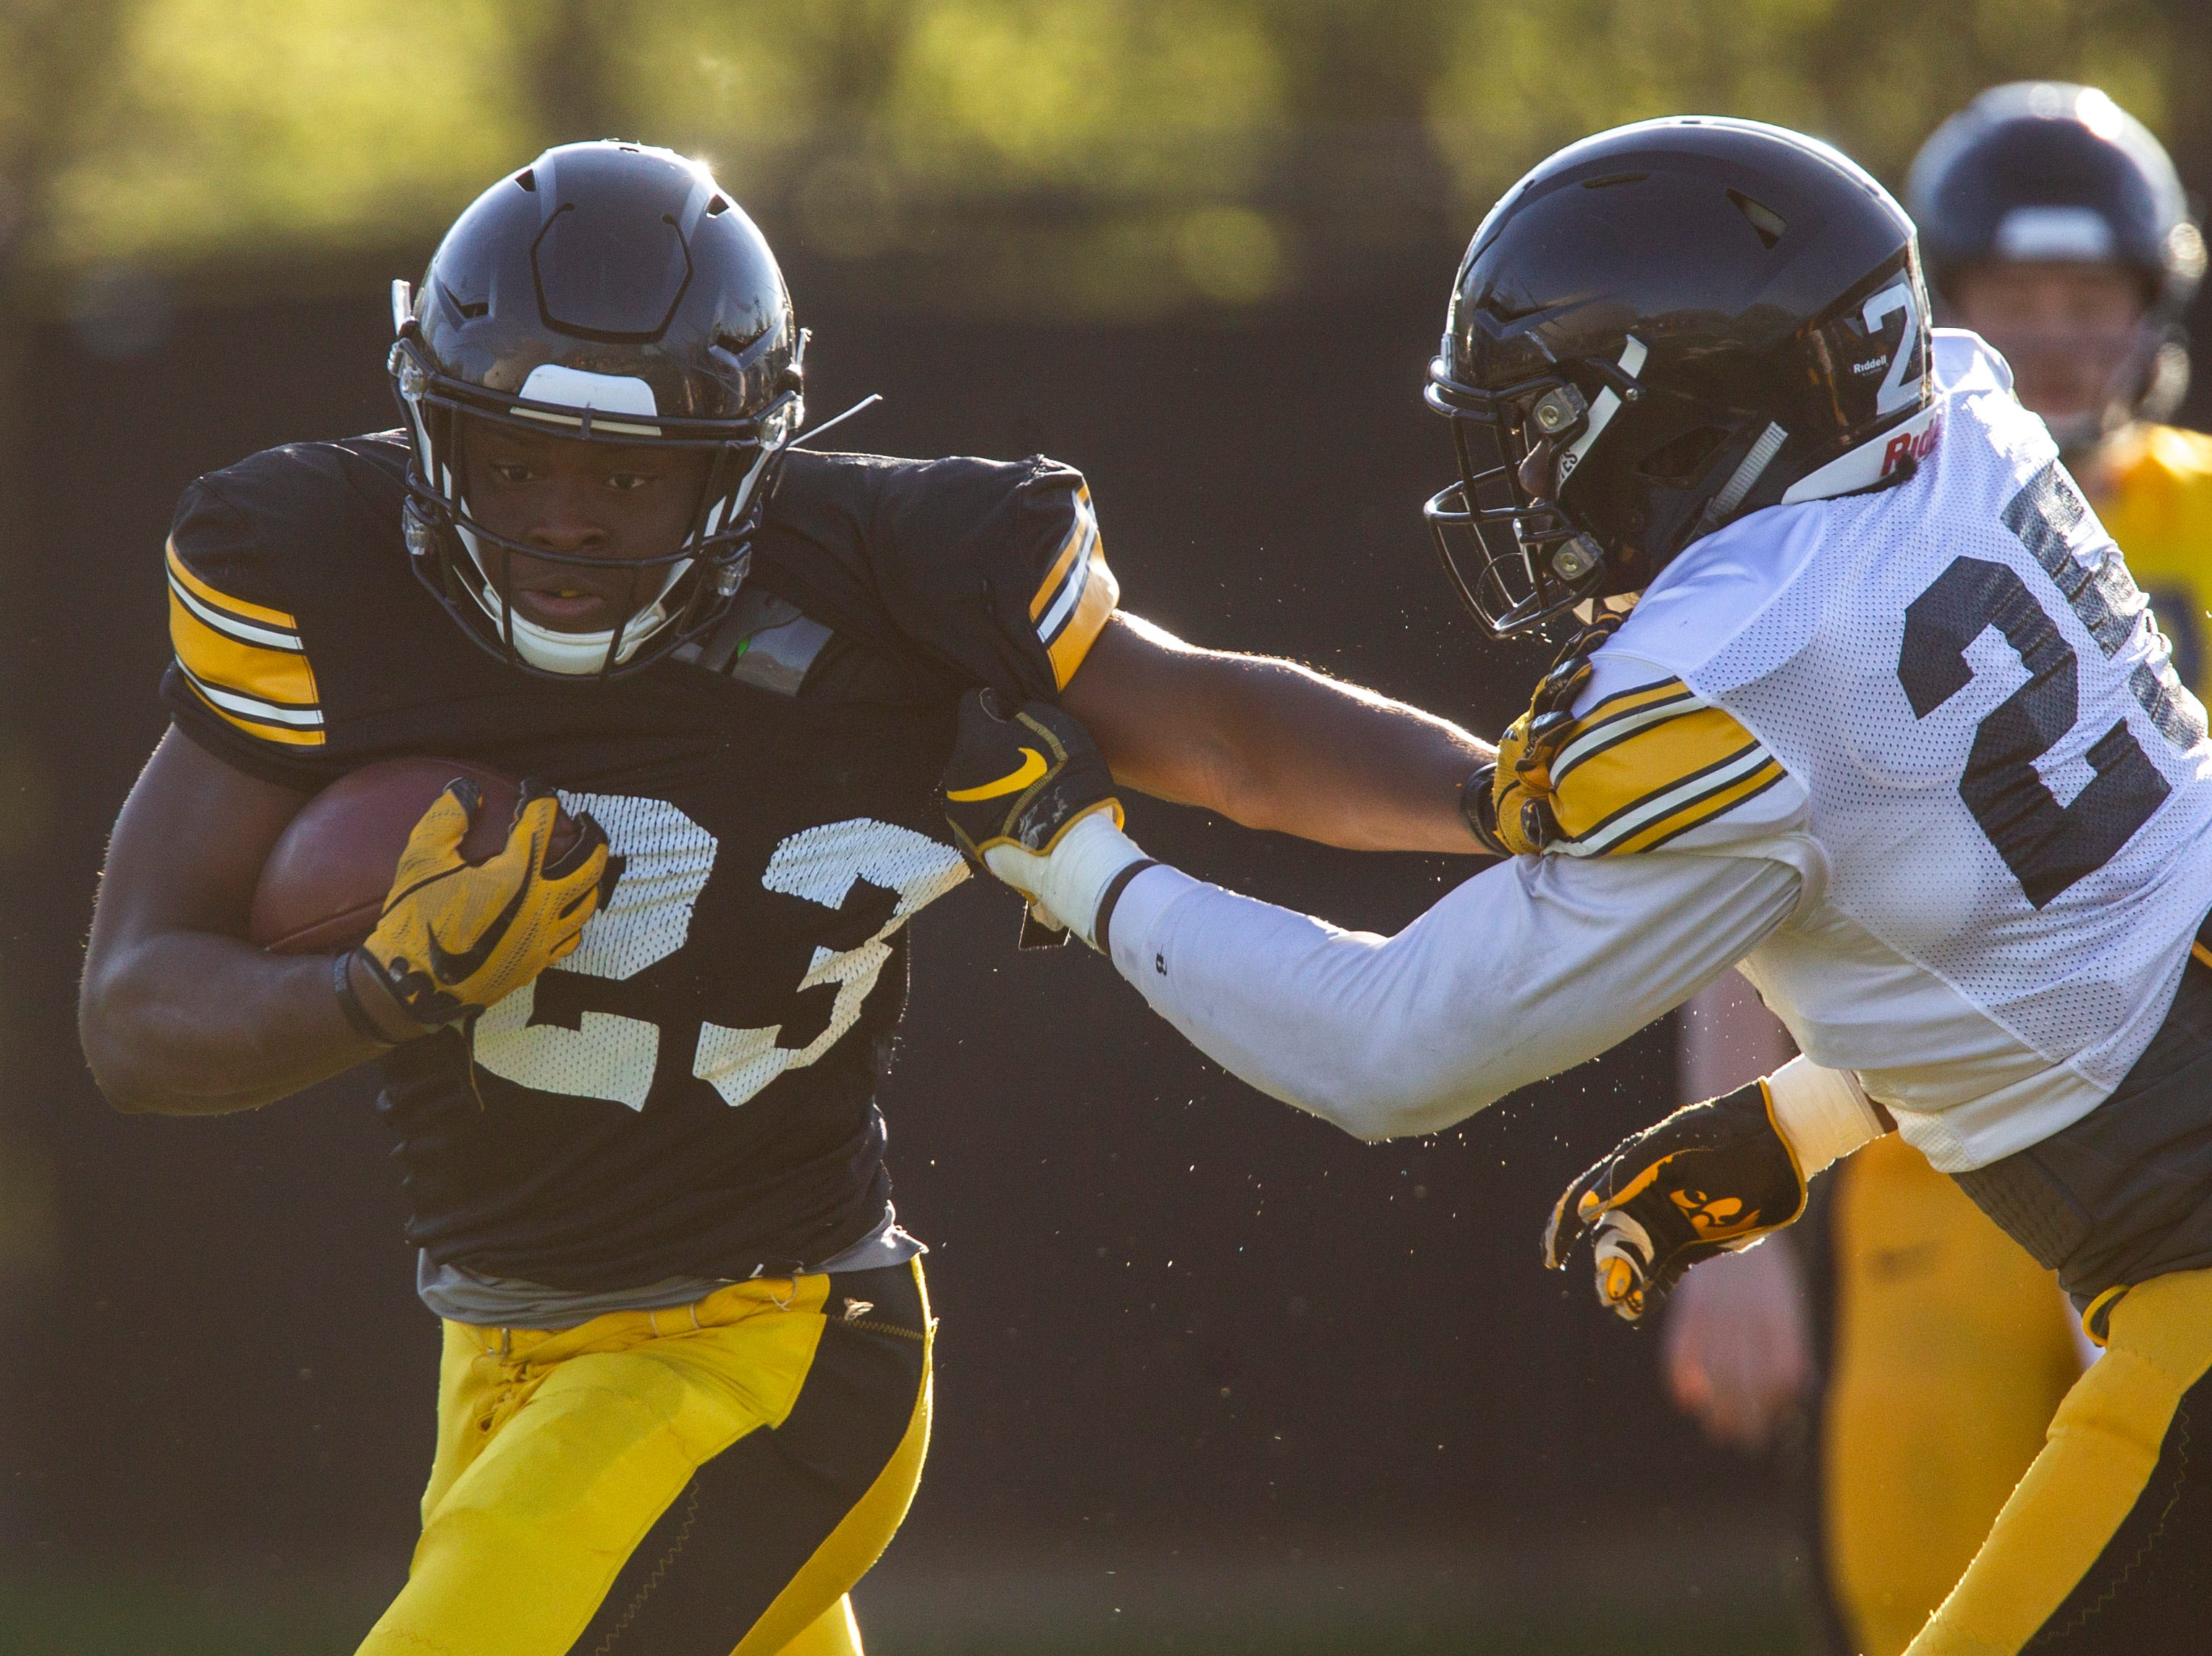 Iowa running back Shadrick Byrd (23) stiff arms linebacker Jayden McDonald (25) during the final spring football practice, Friday, April 26, 2019, at the University of Iowa outdoor practice facility in Iowa City, Iowa.